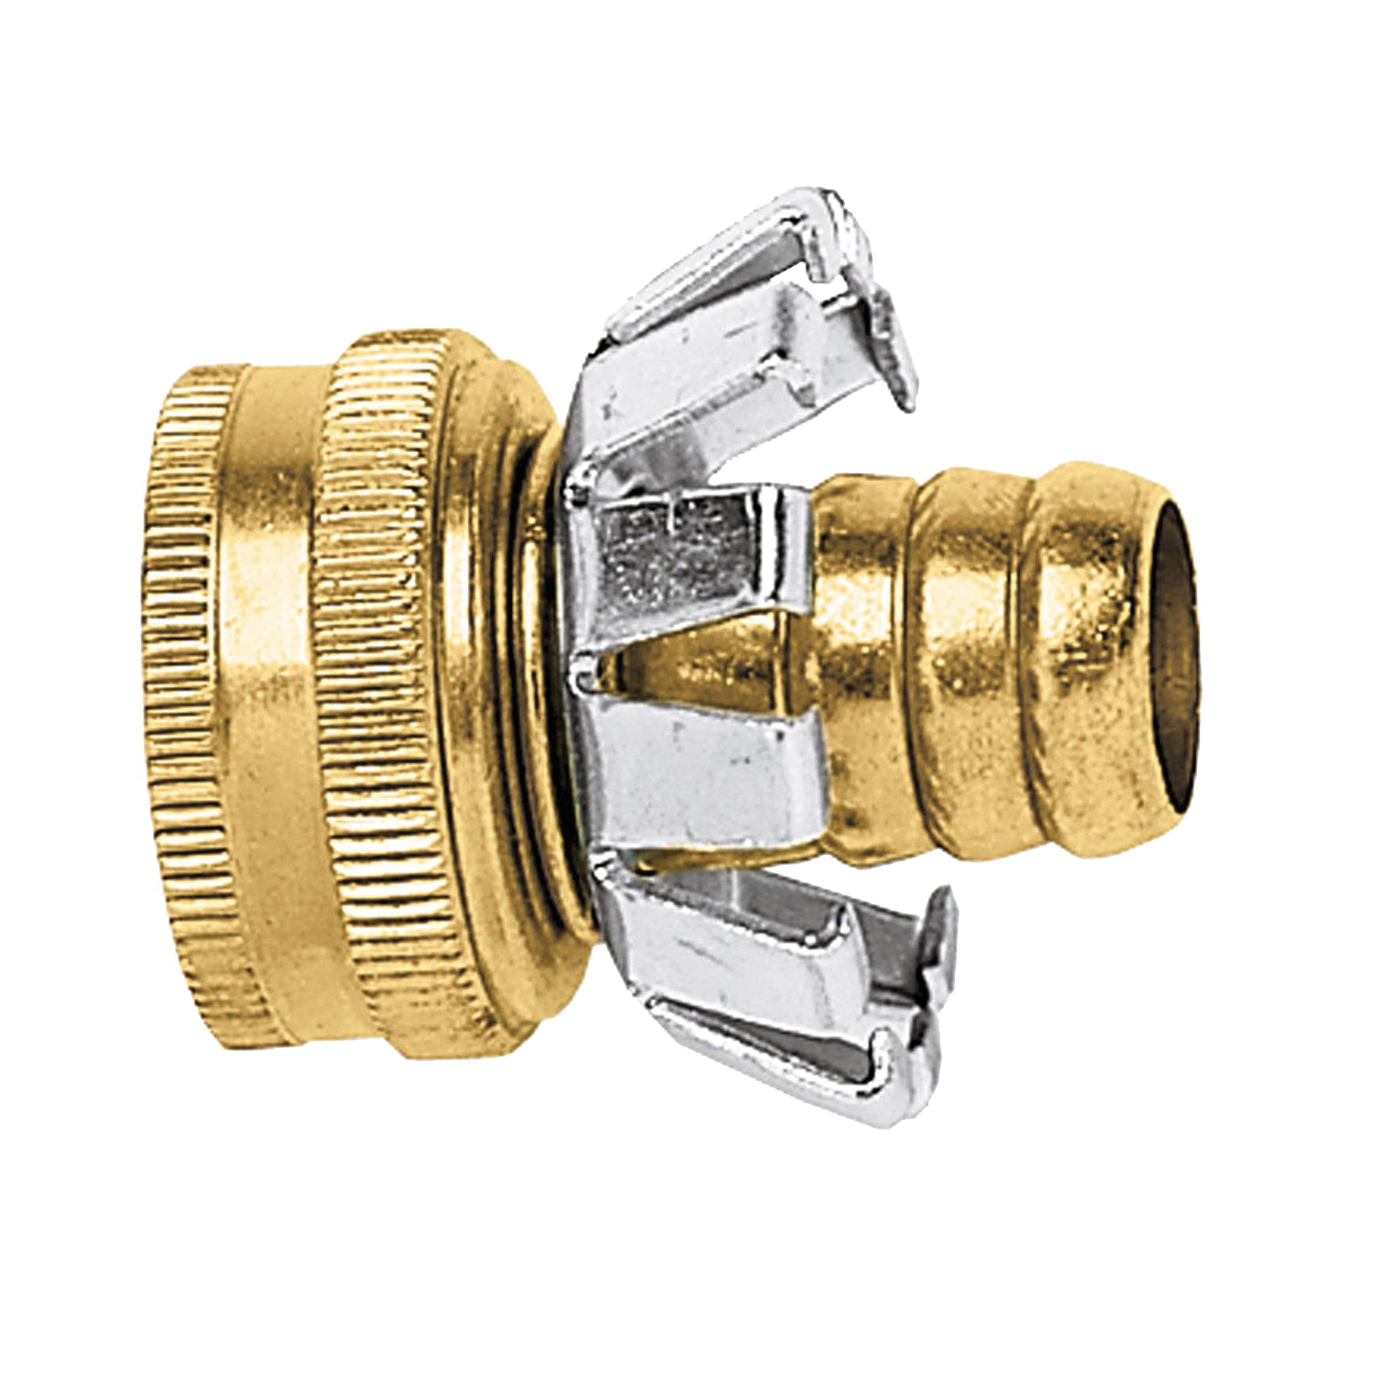 Picture of Gilmour 801204-1002 Hose Coupling, 1/2 in, Female, Brass